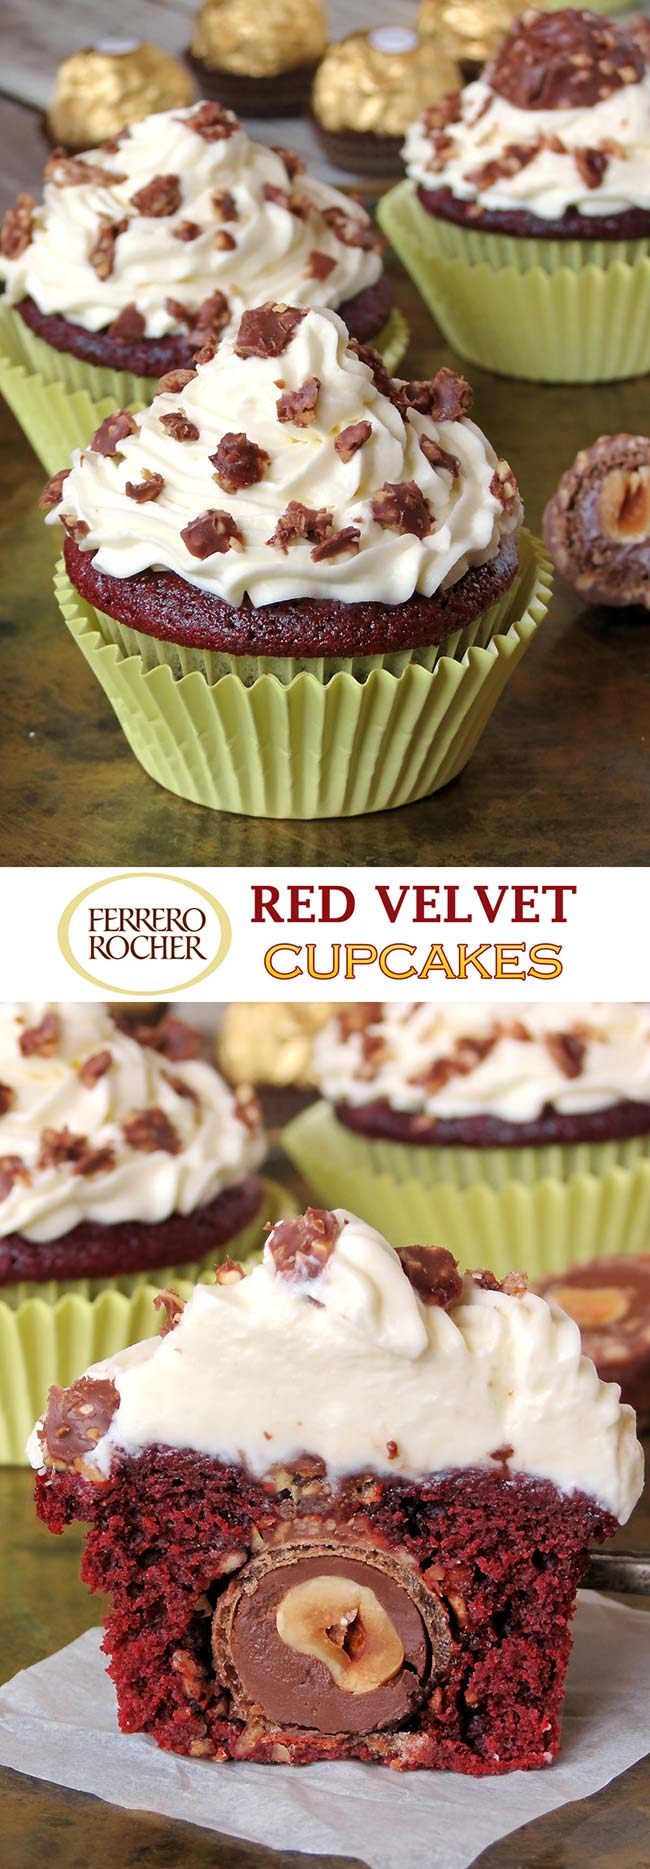 Insanely Delicious Red Velvet Ferrero Rocher Cupcakes With Mascarpone Frosting | yummyaddiction.com